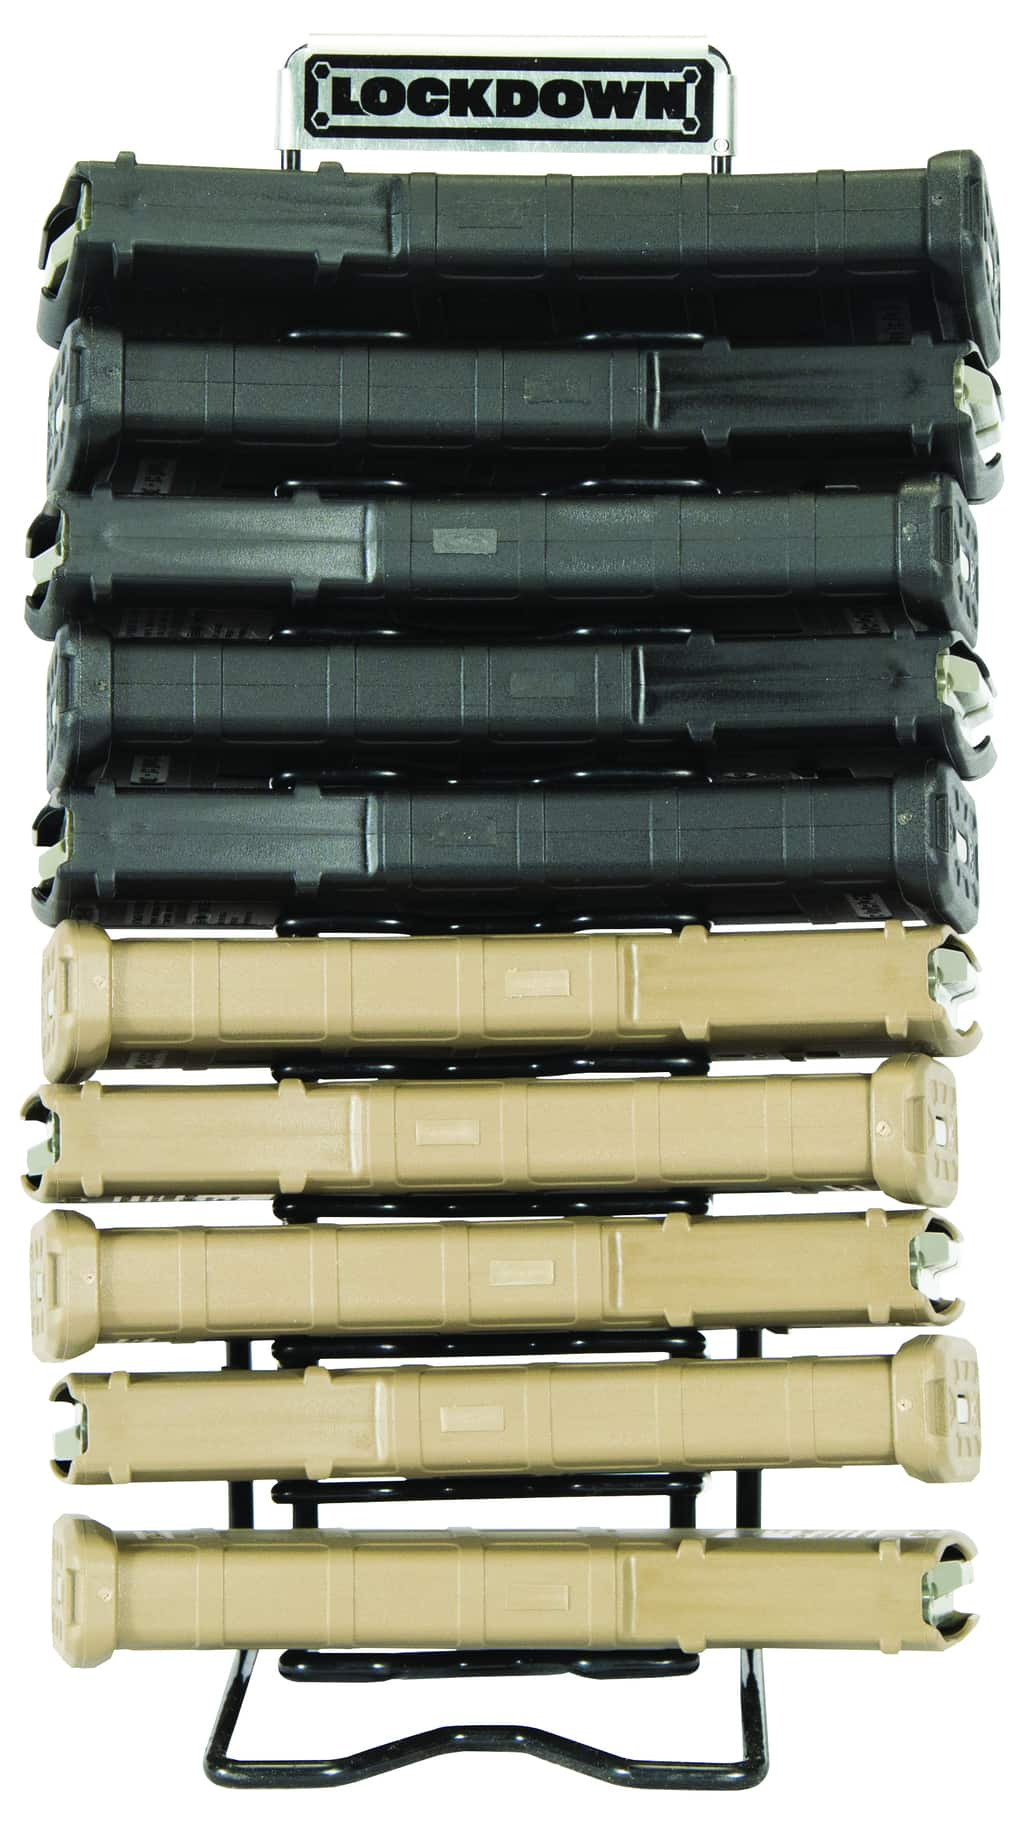 AR-15 Magazine Rack - 222972 Lockdown Full Mag Rack FRONT1